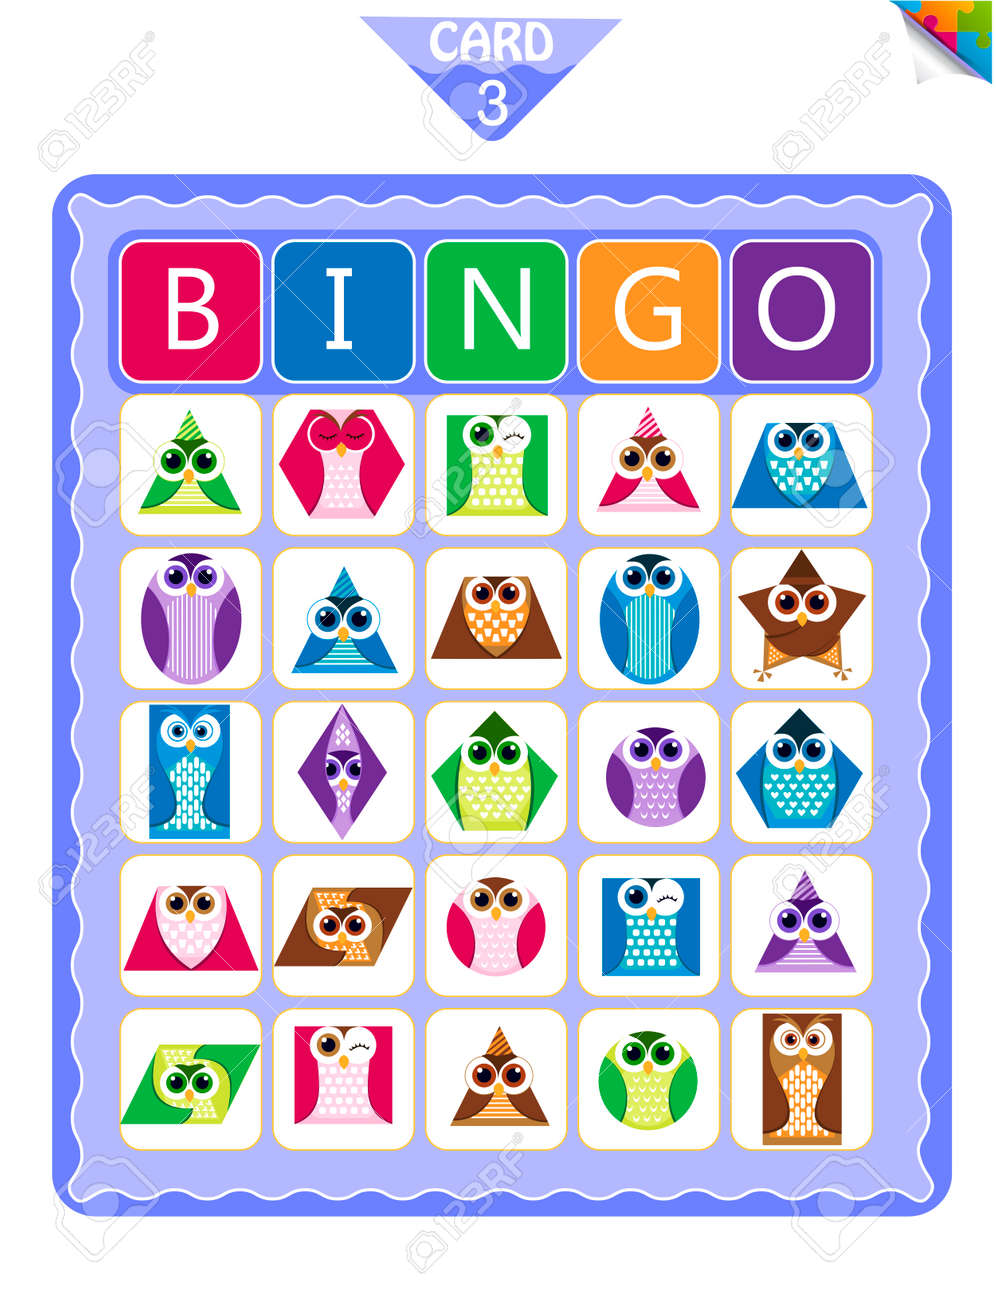 graphic about Musical Bingo Cards Printable called Printable insightful bingo activity for preschool small children with designs..